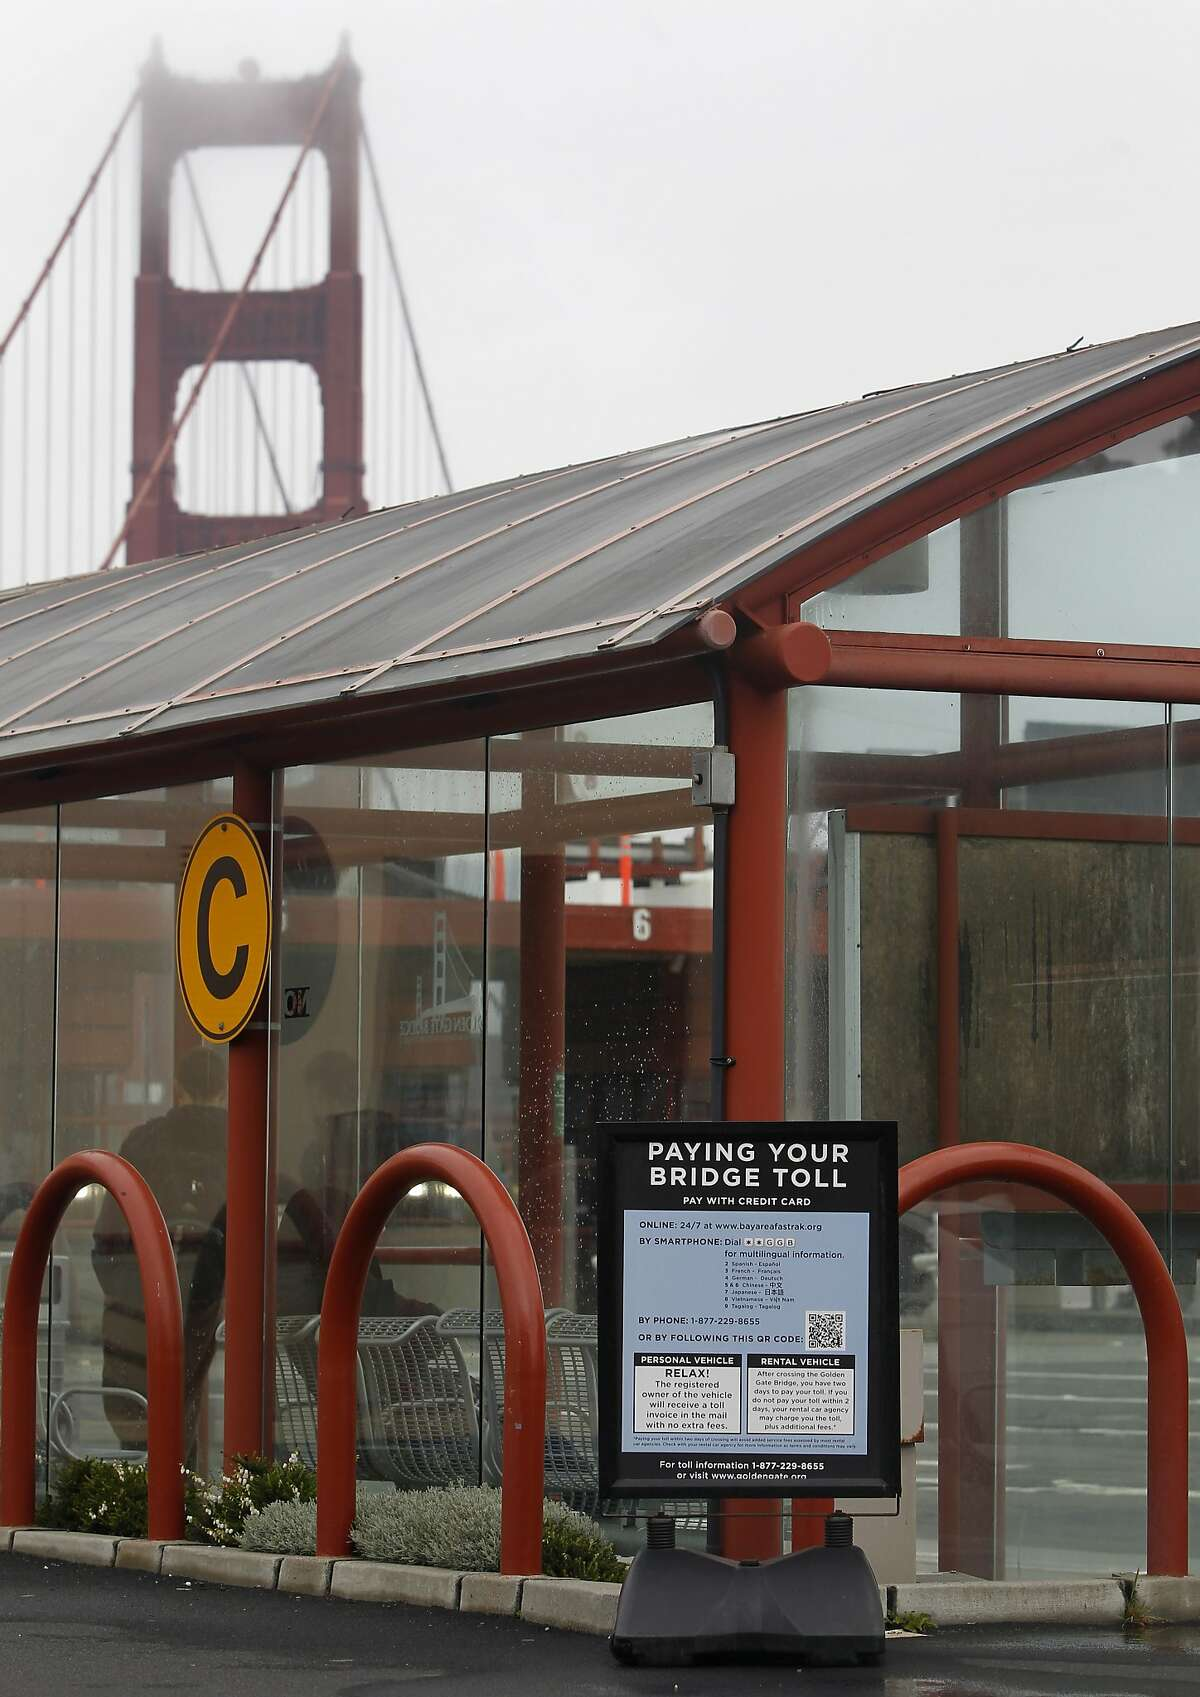 Signs inform out-of-towners how to pay bridge tolls at the Golden Gate Bridge toll plaza in San Francisco, Calif. on Thursday, May 21, 2015. Major rental car companies provide an option that allows customers to rent transponders for as much as $10 a day, but many tourists don't know that you can simply pay the $6 toll online, over the phone or at a gas station or convenience store in advance or within two days of crossing the span.